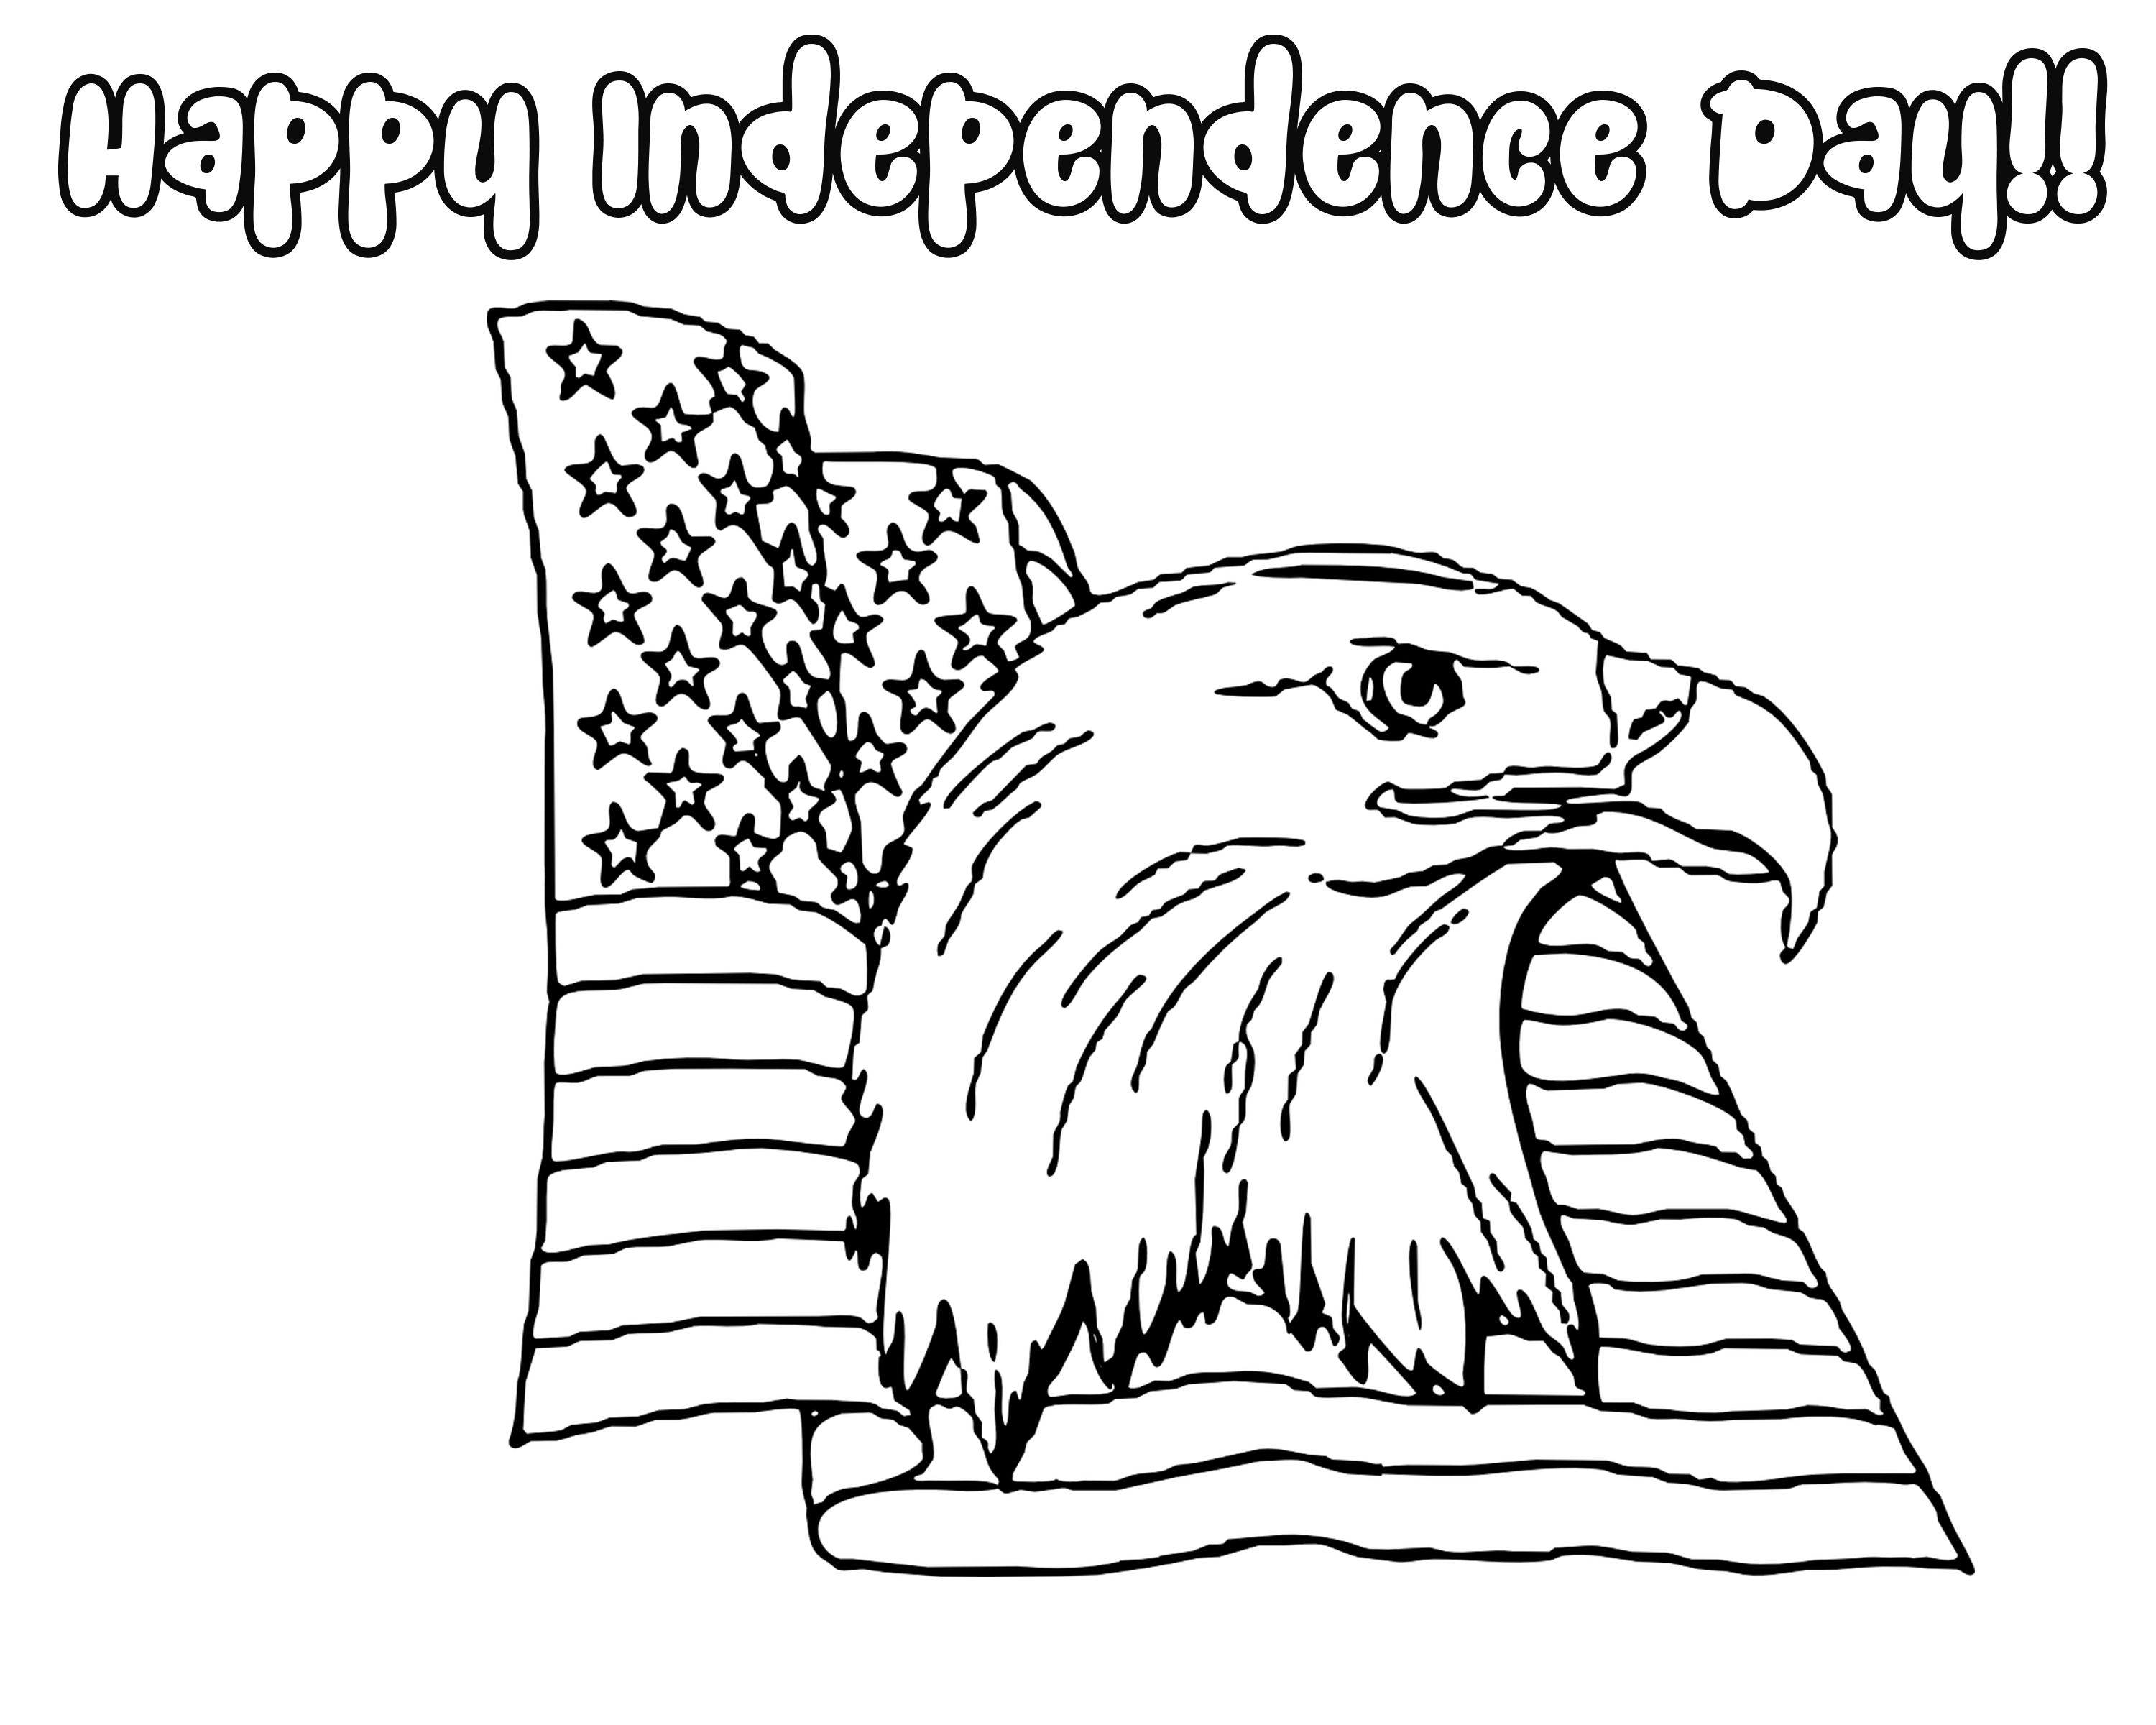 Declaration Of Independence Drawing At Getdrawings